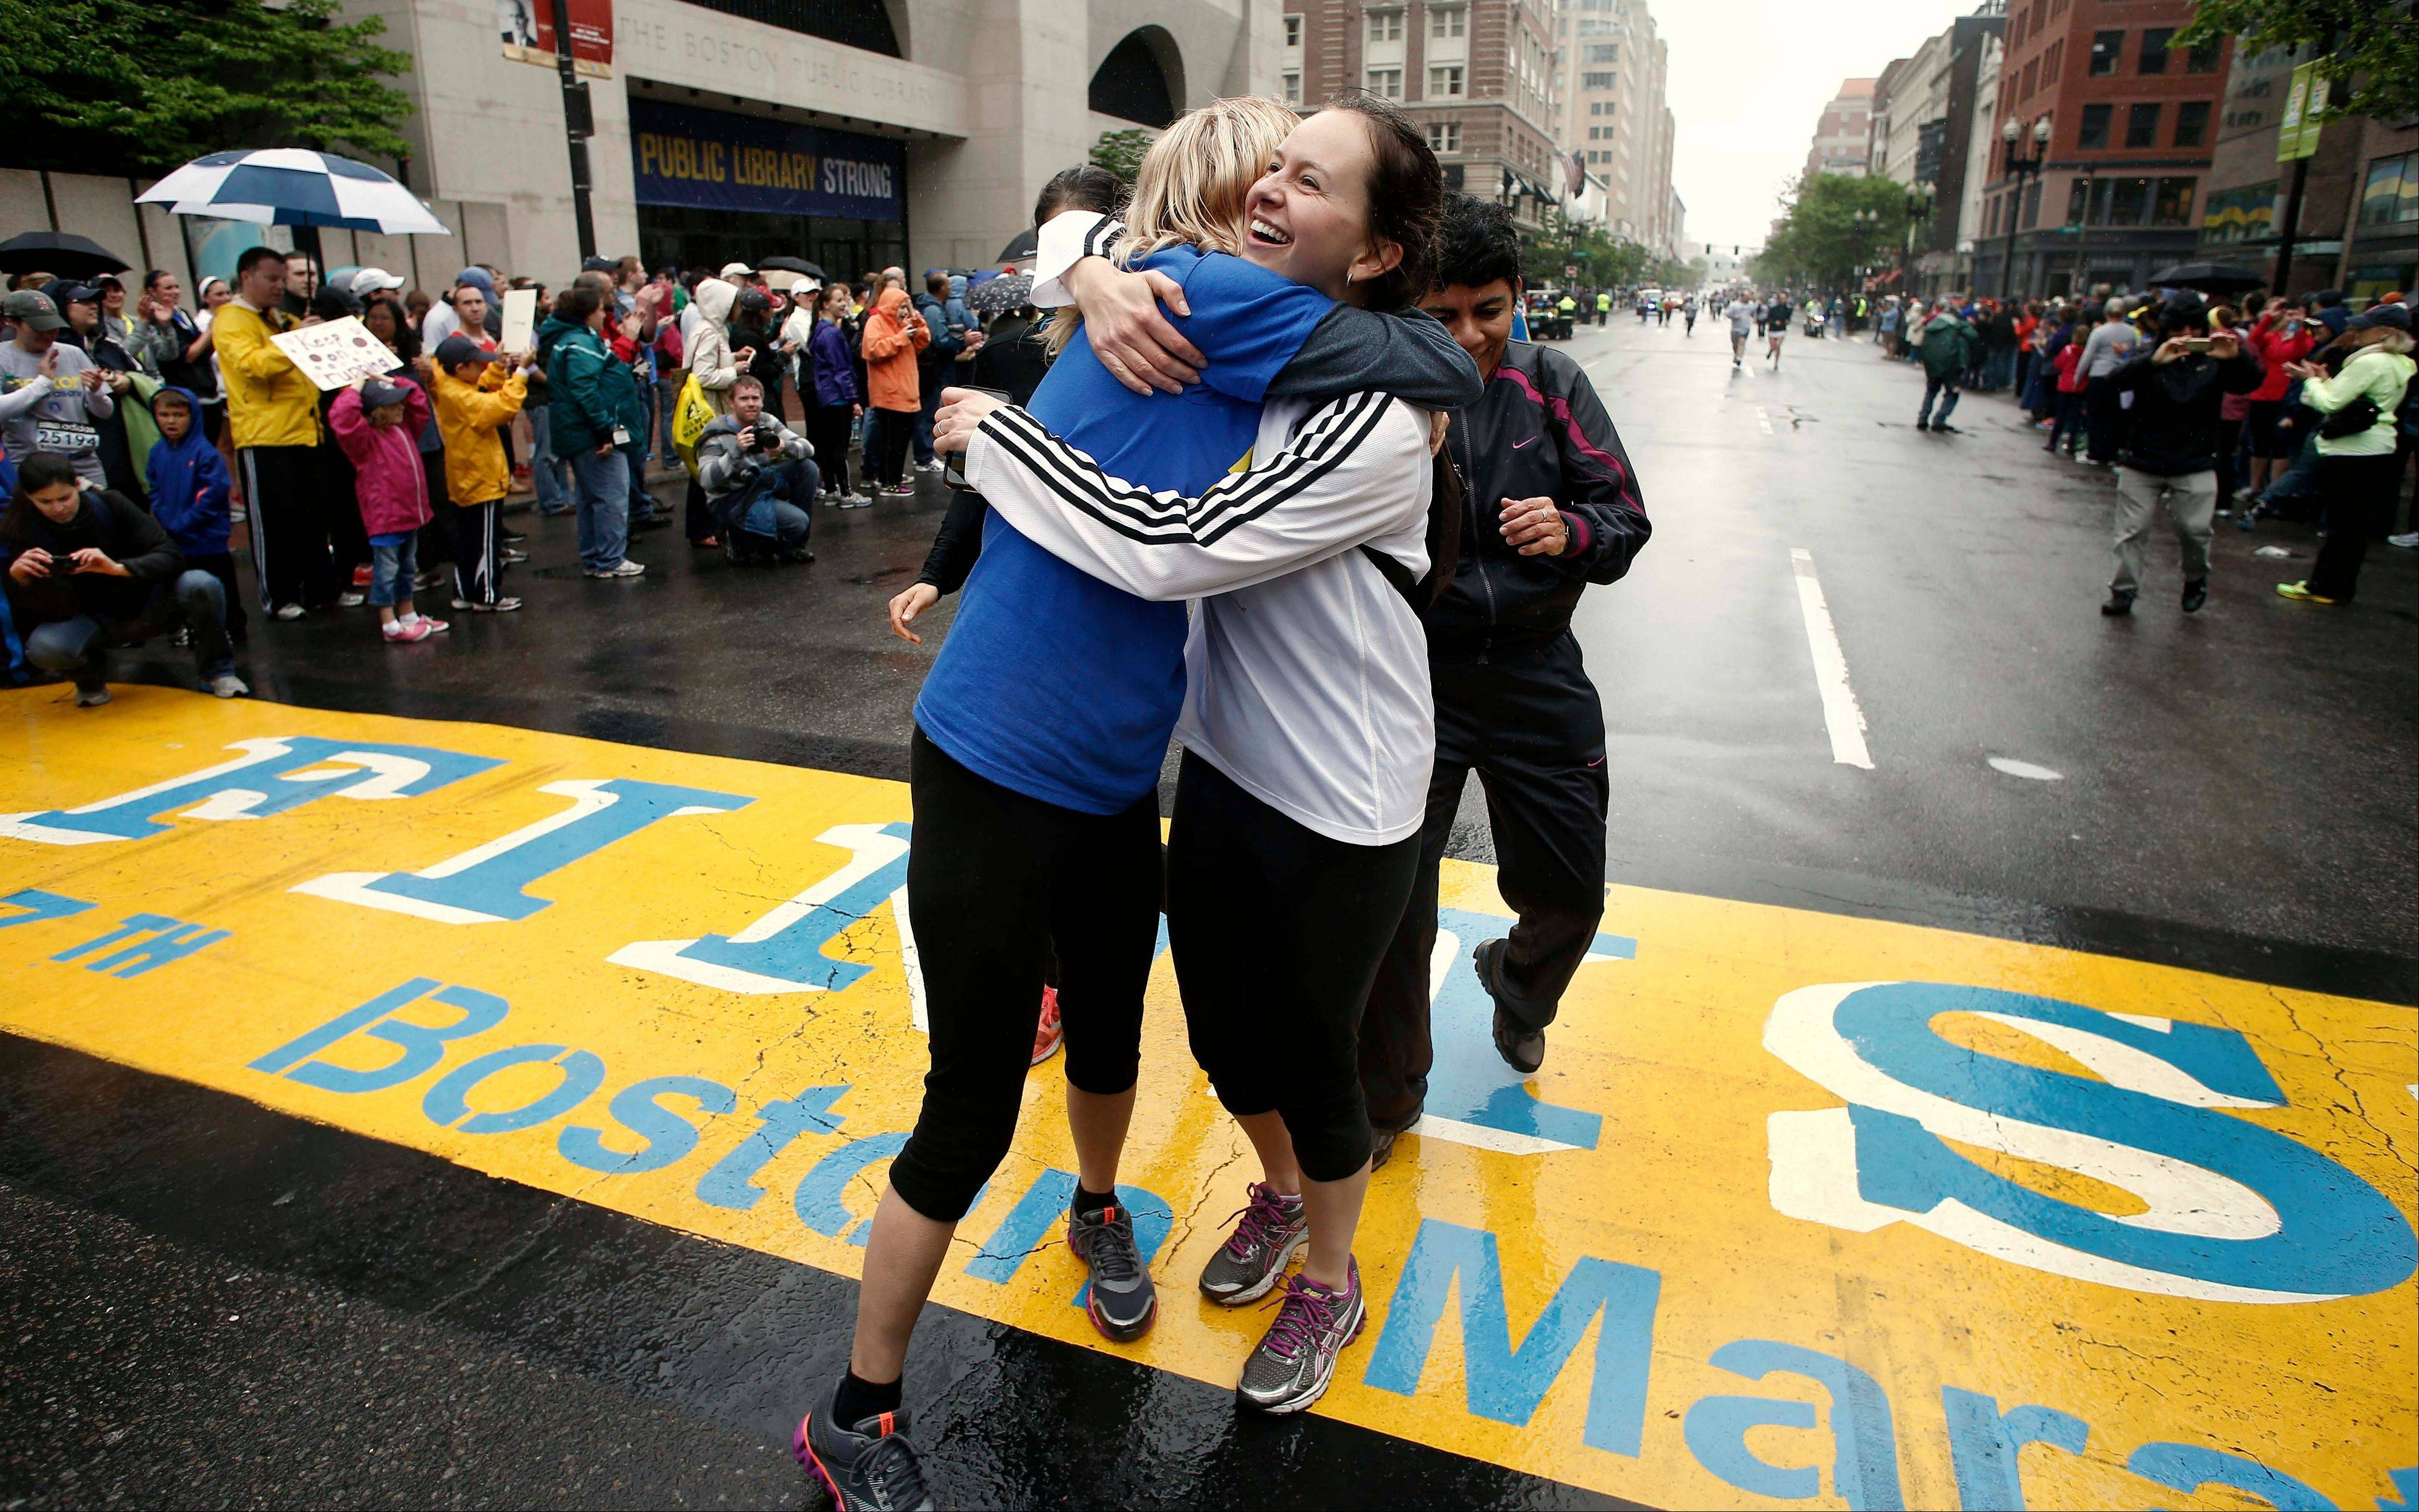 Rachel, left, and Pam Vingsness of Newton, Mass., hug each other after crossing the finish line as runners who were unable to finish the Boston Marathon on April 15 because of the bombings were allowed to finish the last mile of the race in Boston, Saturday, May 25.